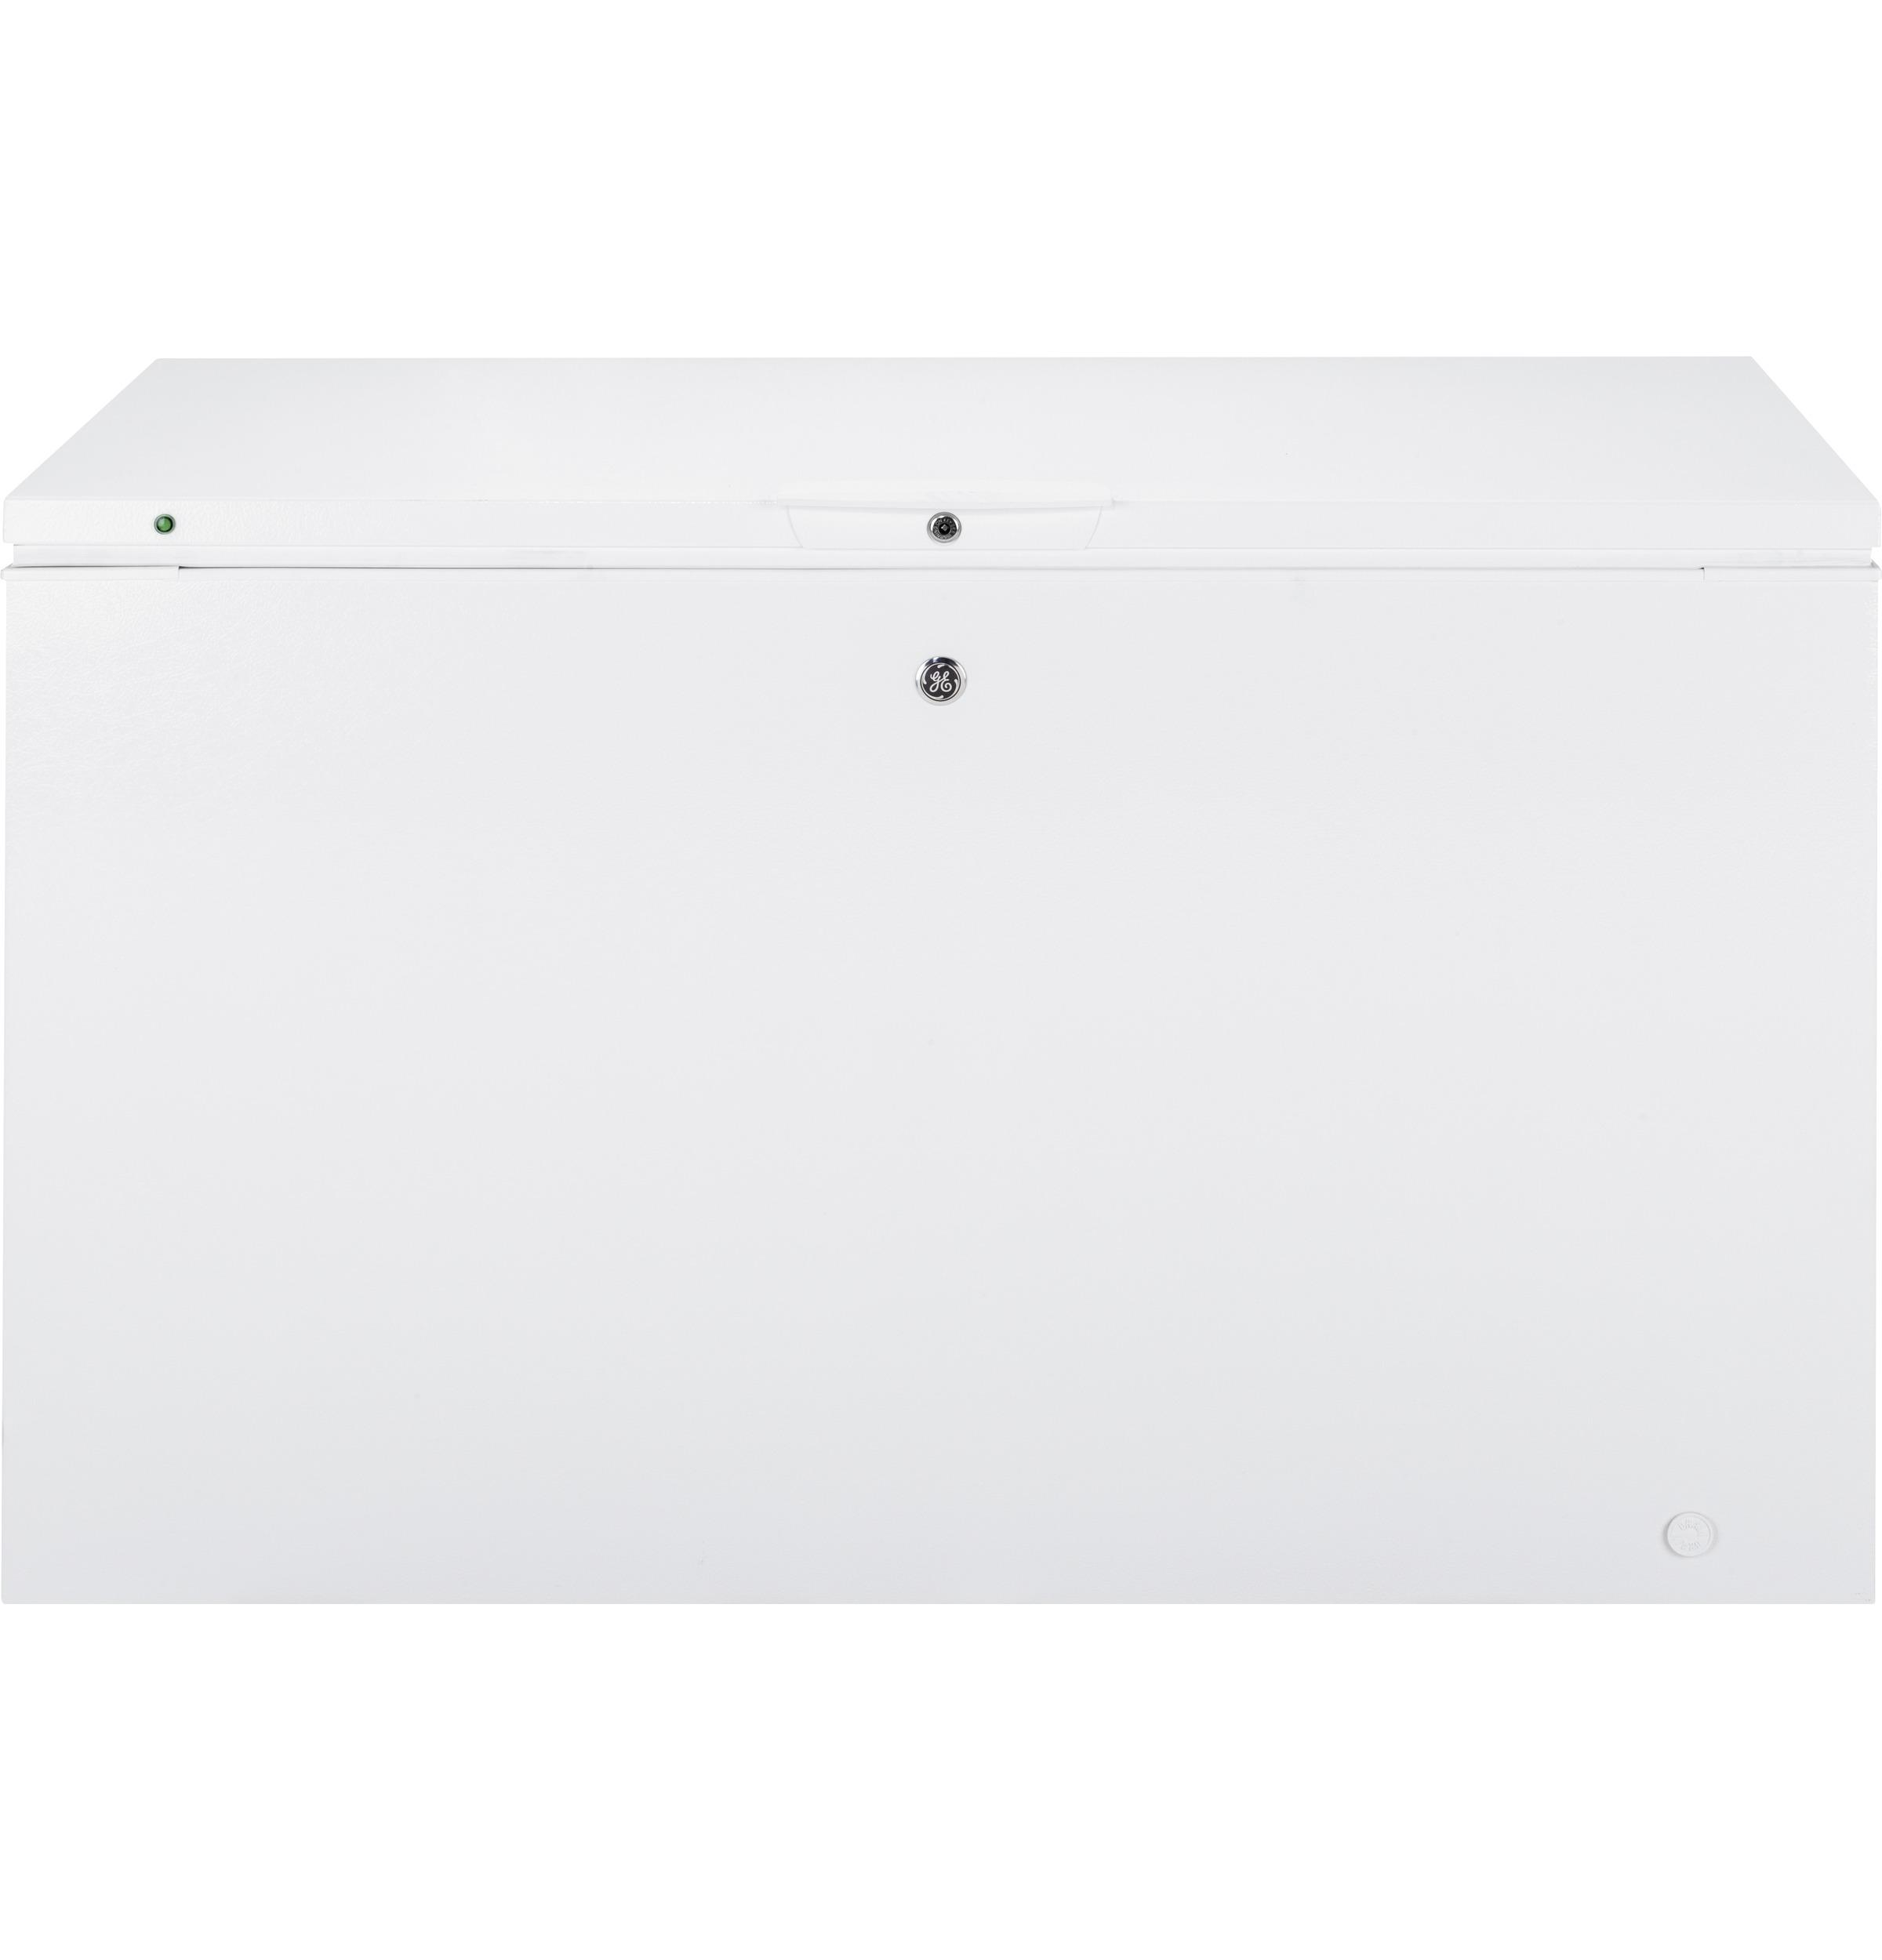 GE(R) 15.6 Cu. Ft. Manual Defrost Chest Freezer